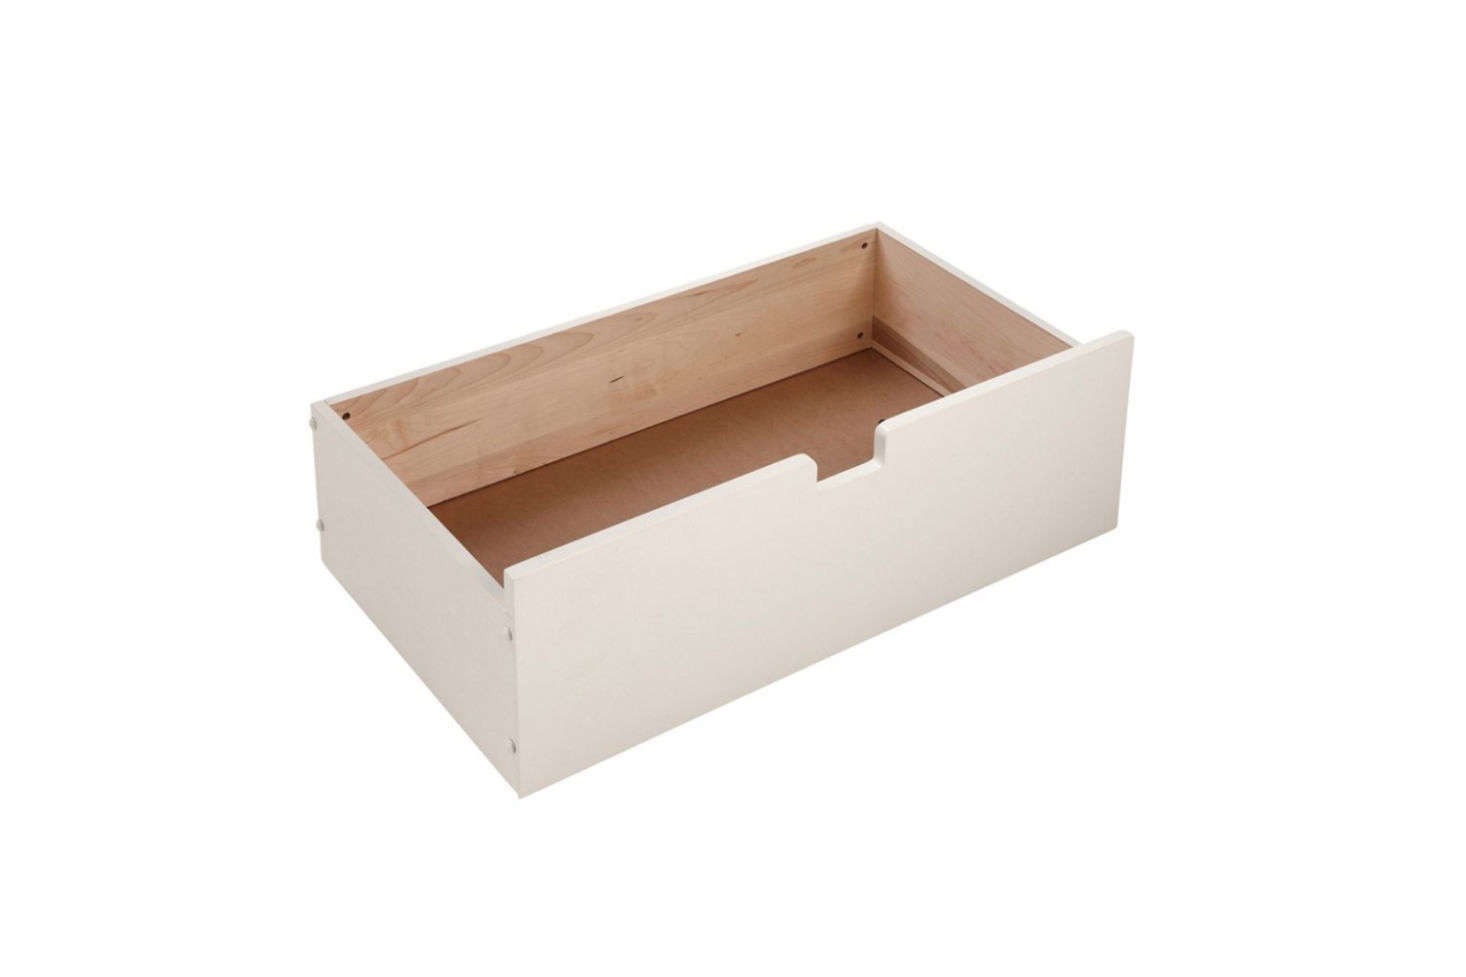 While the L.L. Bean Underbed Drawer is designed to coordinate with their beds of the same style, the drawer can be used with any bed frame of a similar shape and clearance. Made of solid wood in Maine, the drawer is $9.